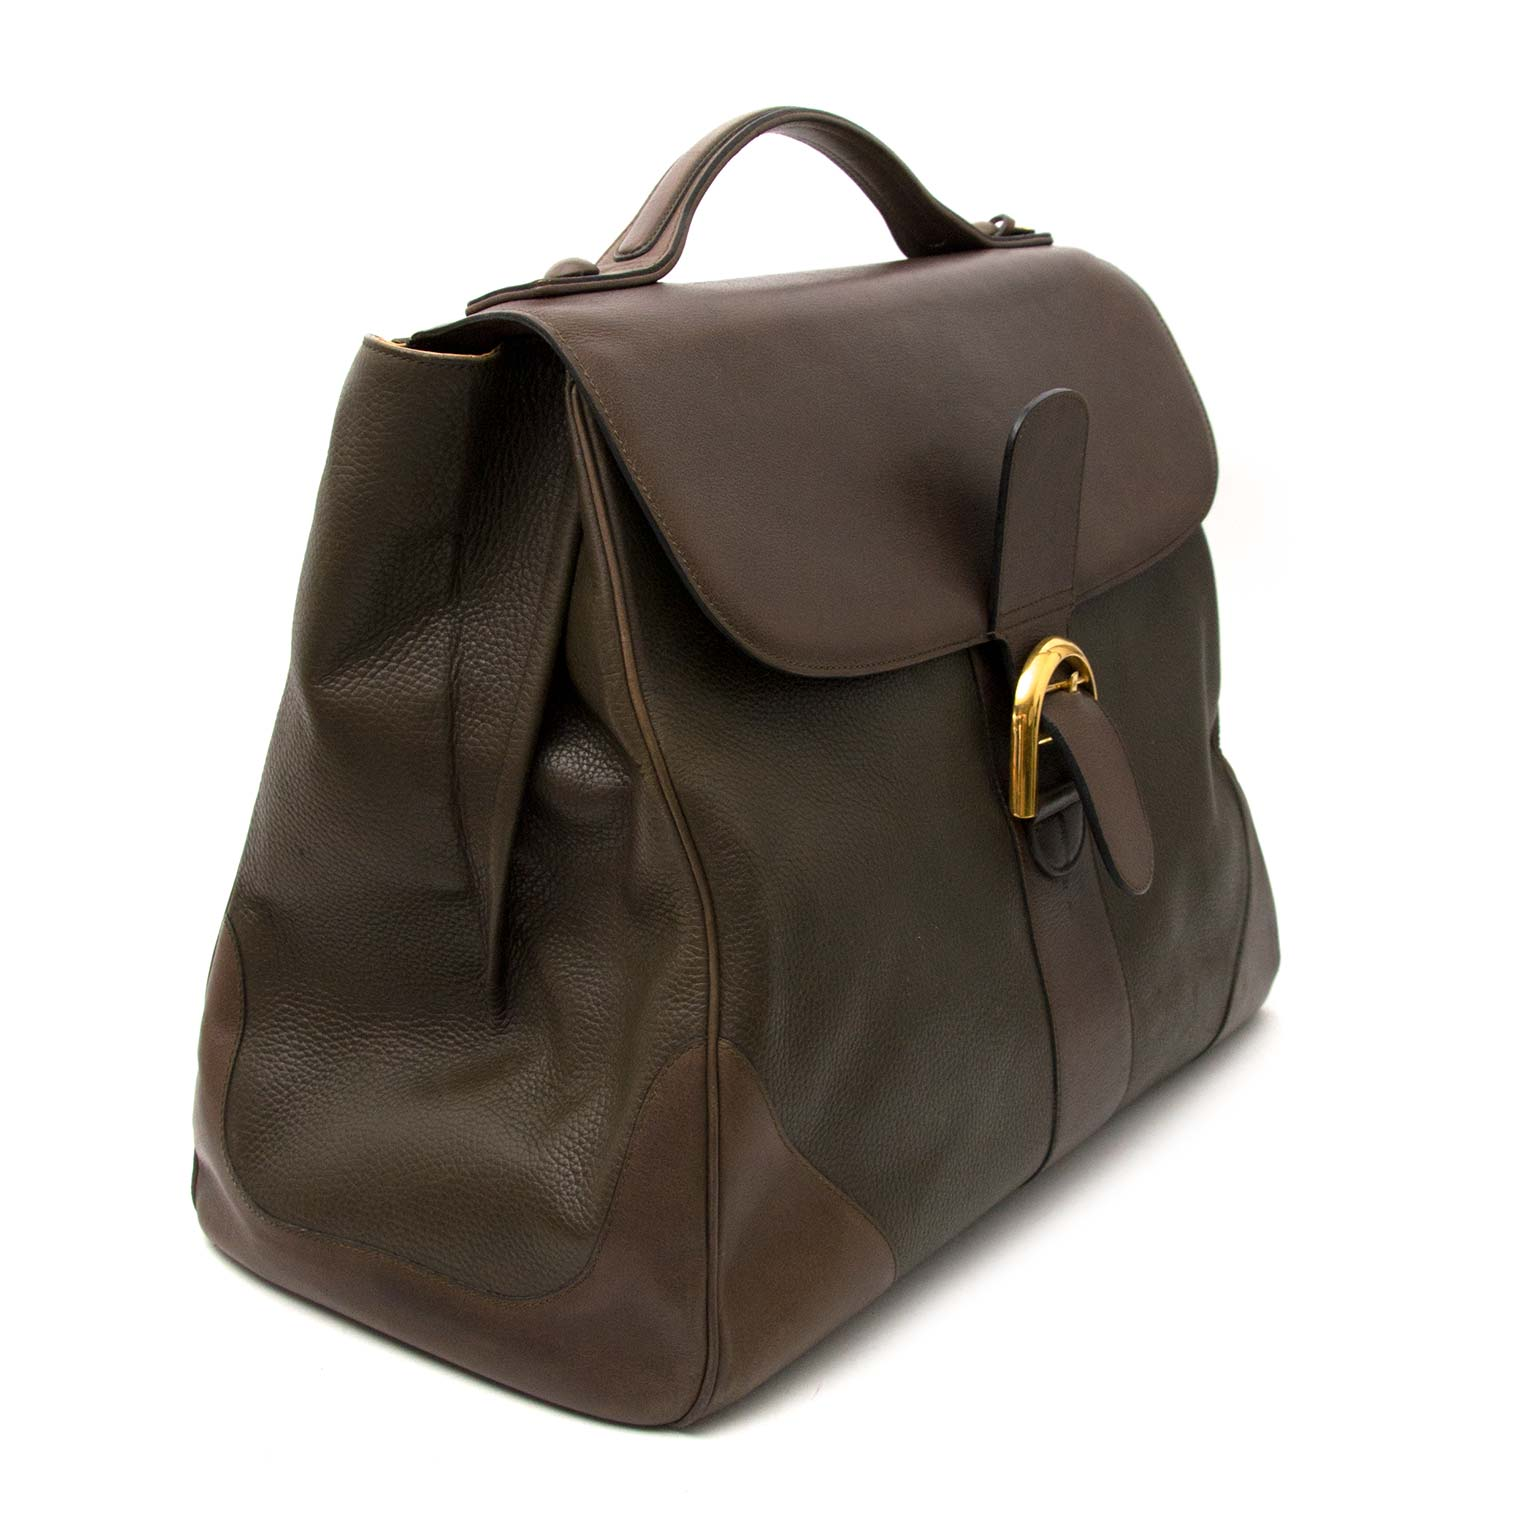 acheter en ligne seconde main Delvaux Khaki Brown Brillant Weekender